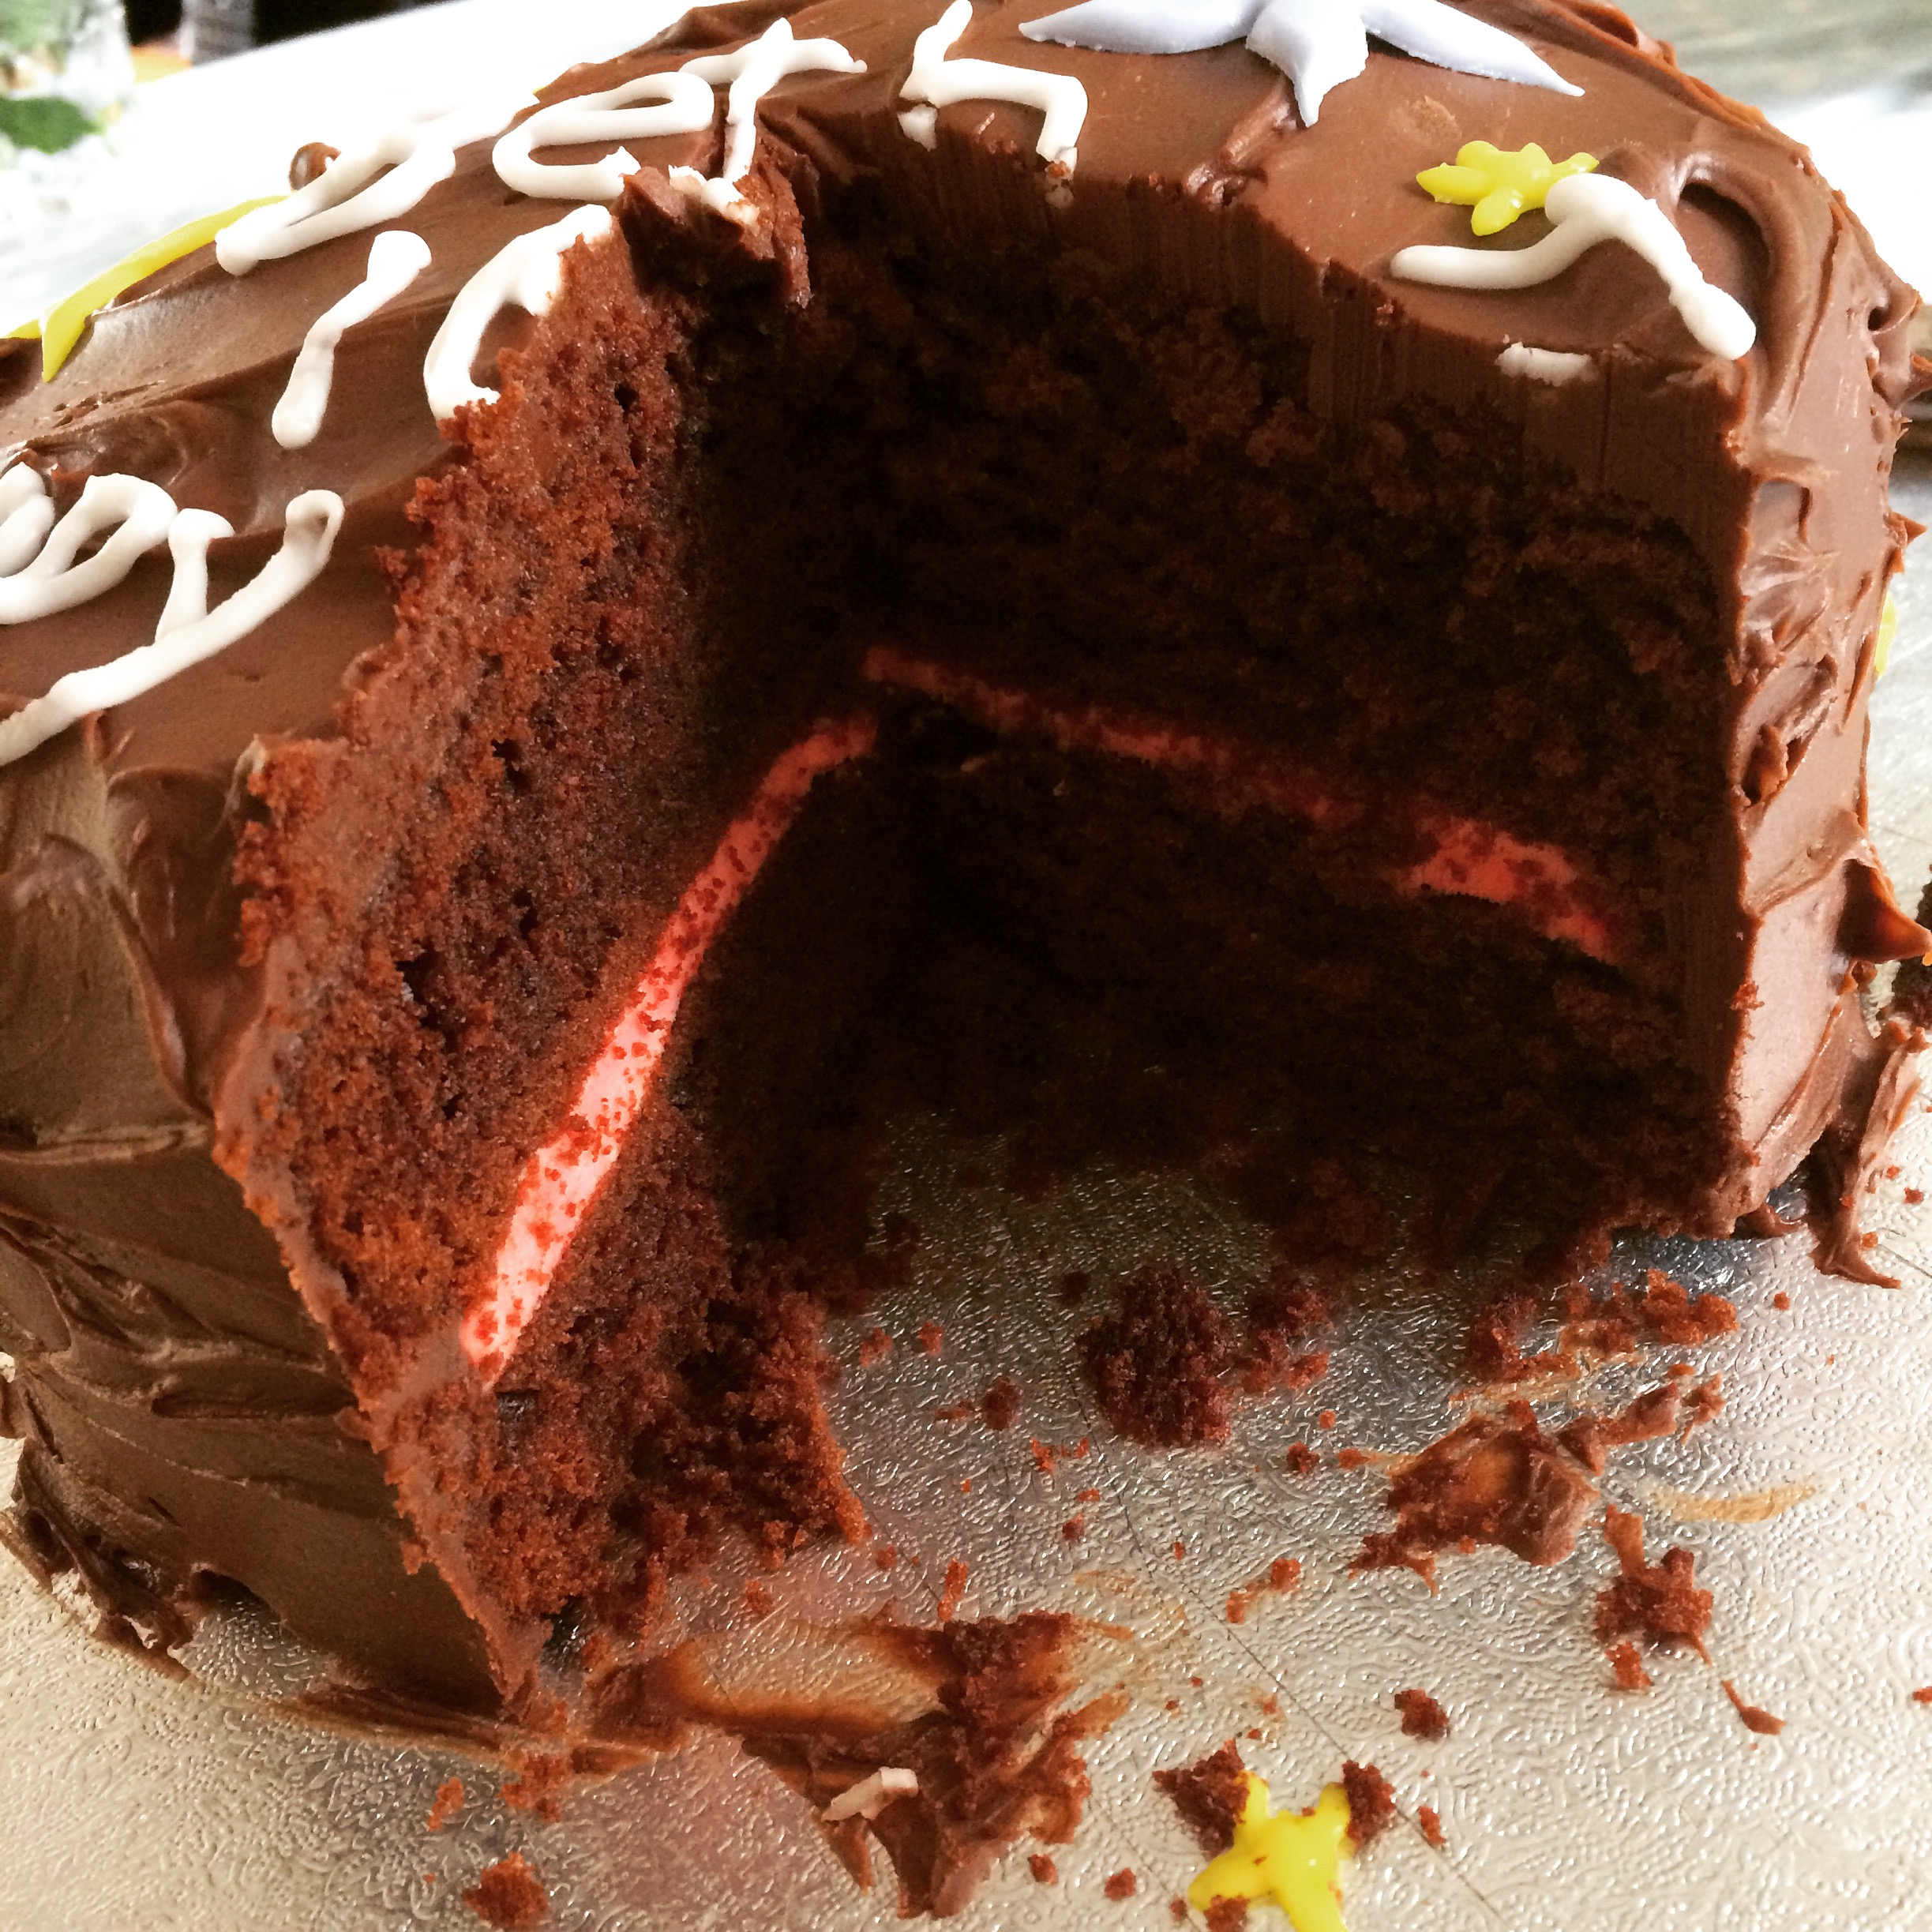 Cakes Based On Your Favourite Chocolate Bar – Turkish Delight